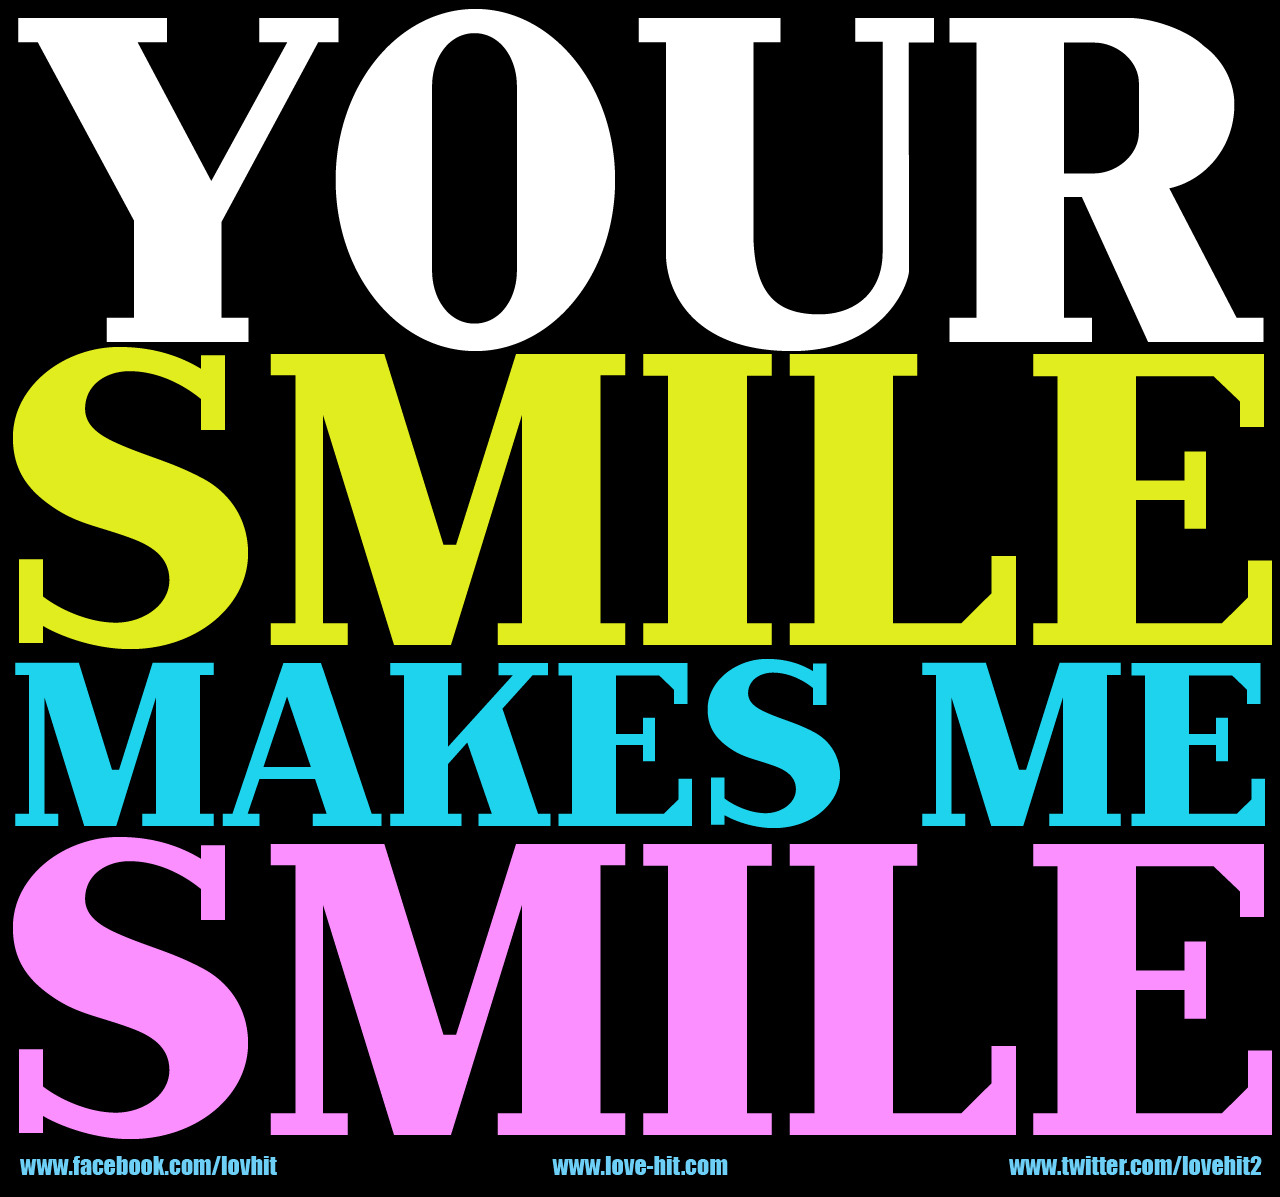 love-hit:  Your smile makes me smile Via http://love-hit.com/2012/05/23/your-smile-makes-me-smile/